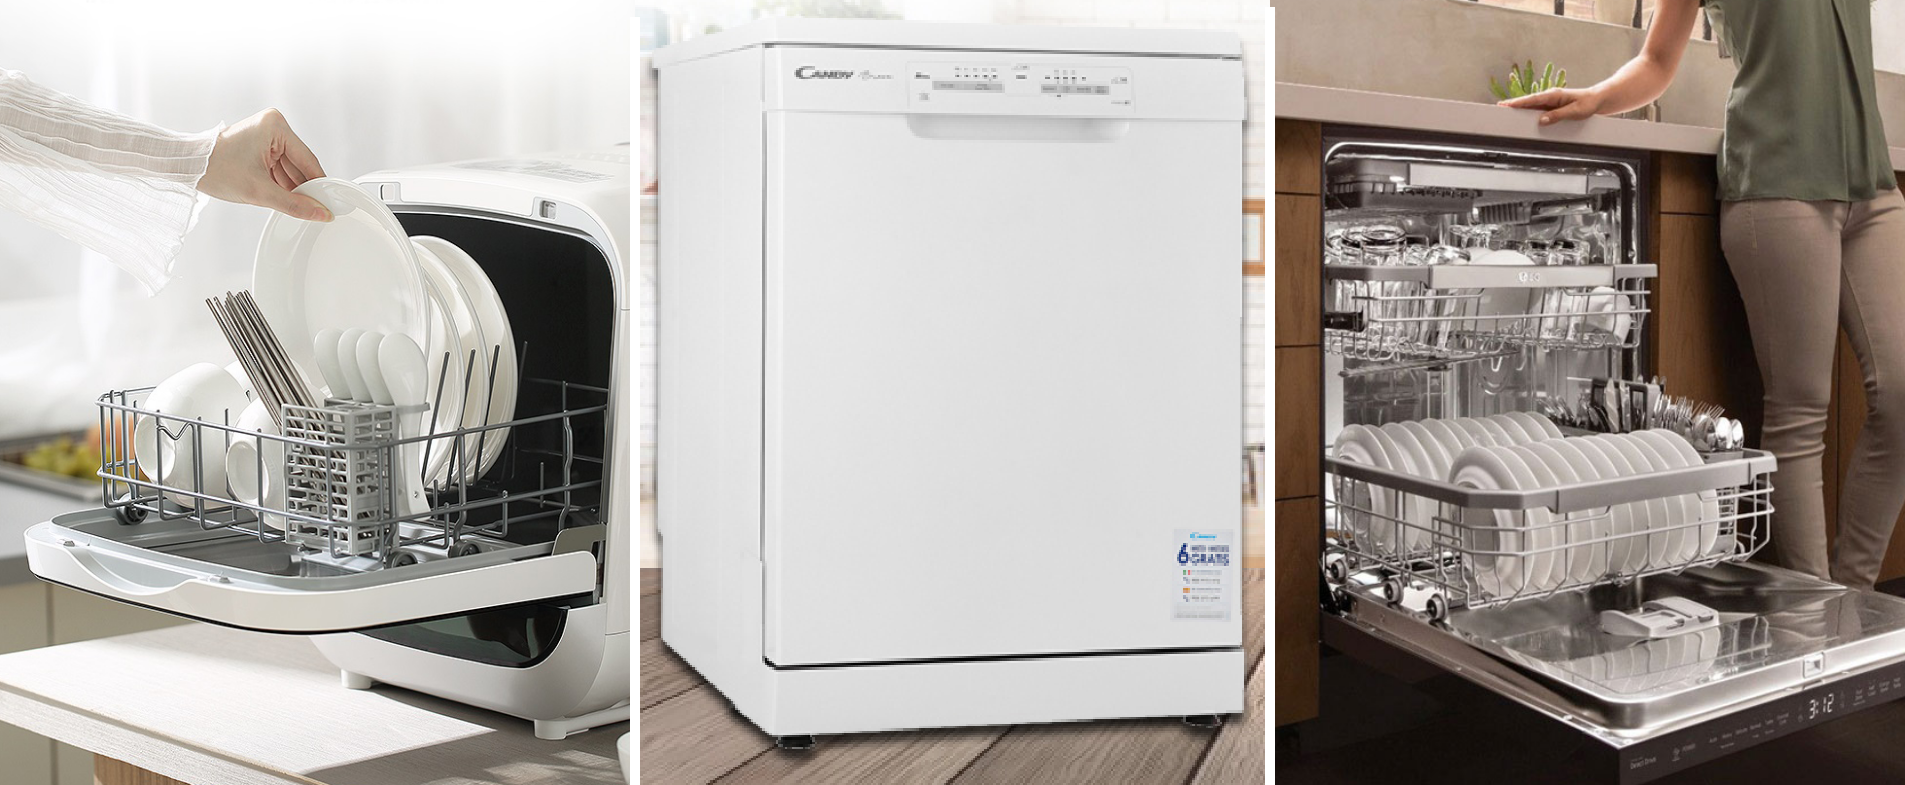 affordable dishwasher in singapore -